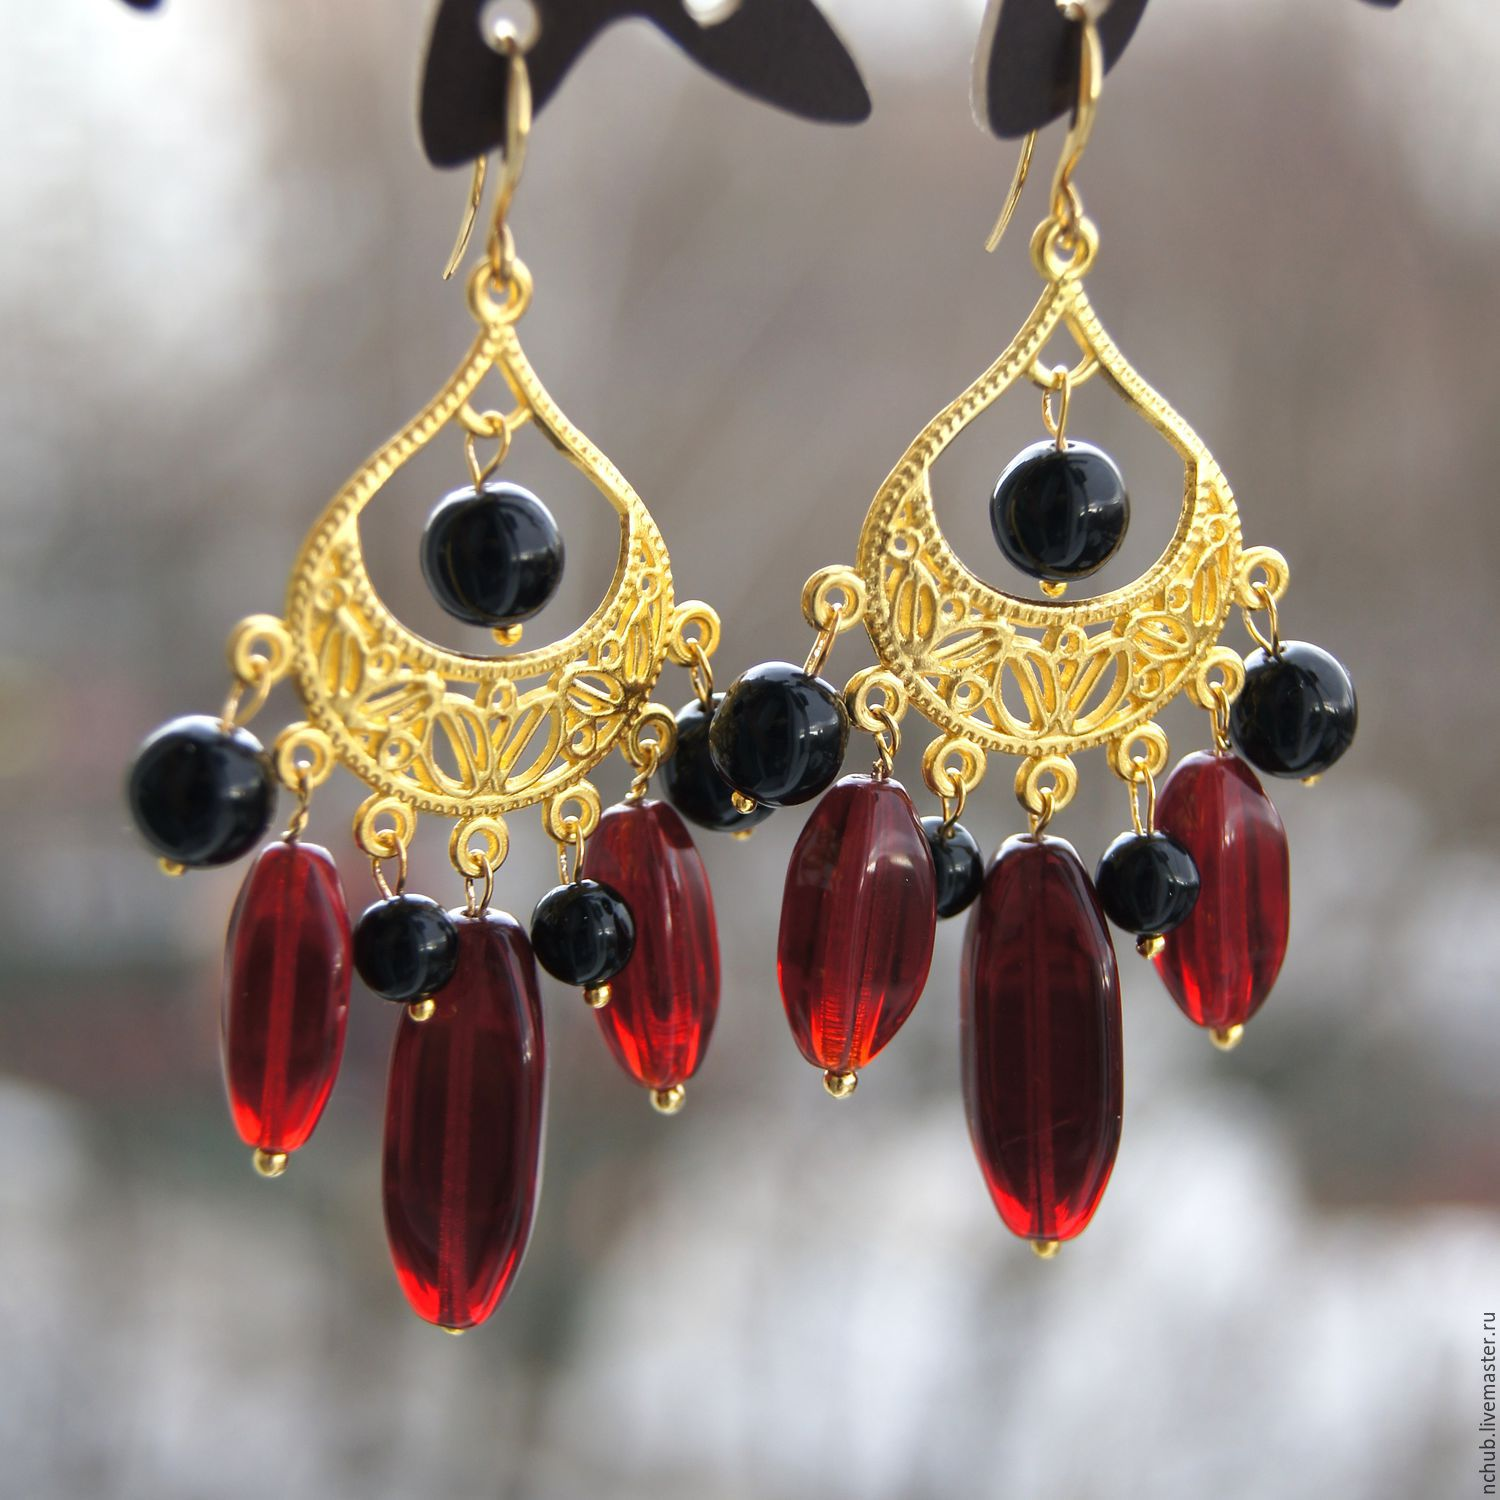 Earrings In The Spanish Style Red And Black Gold